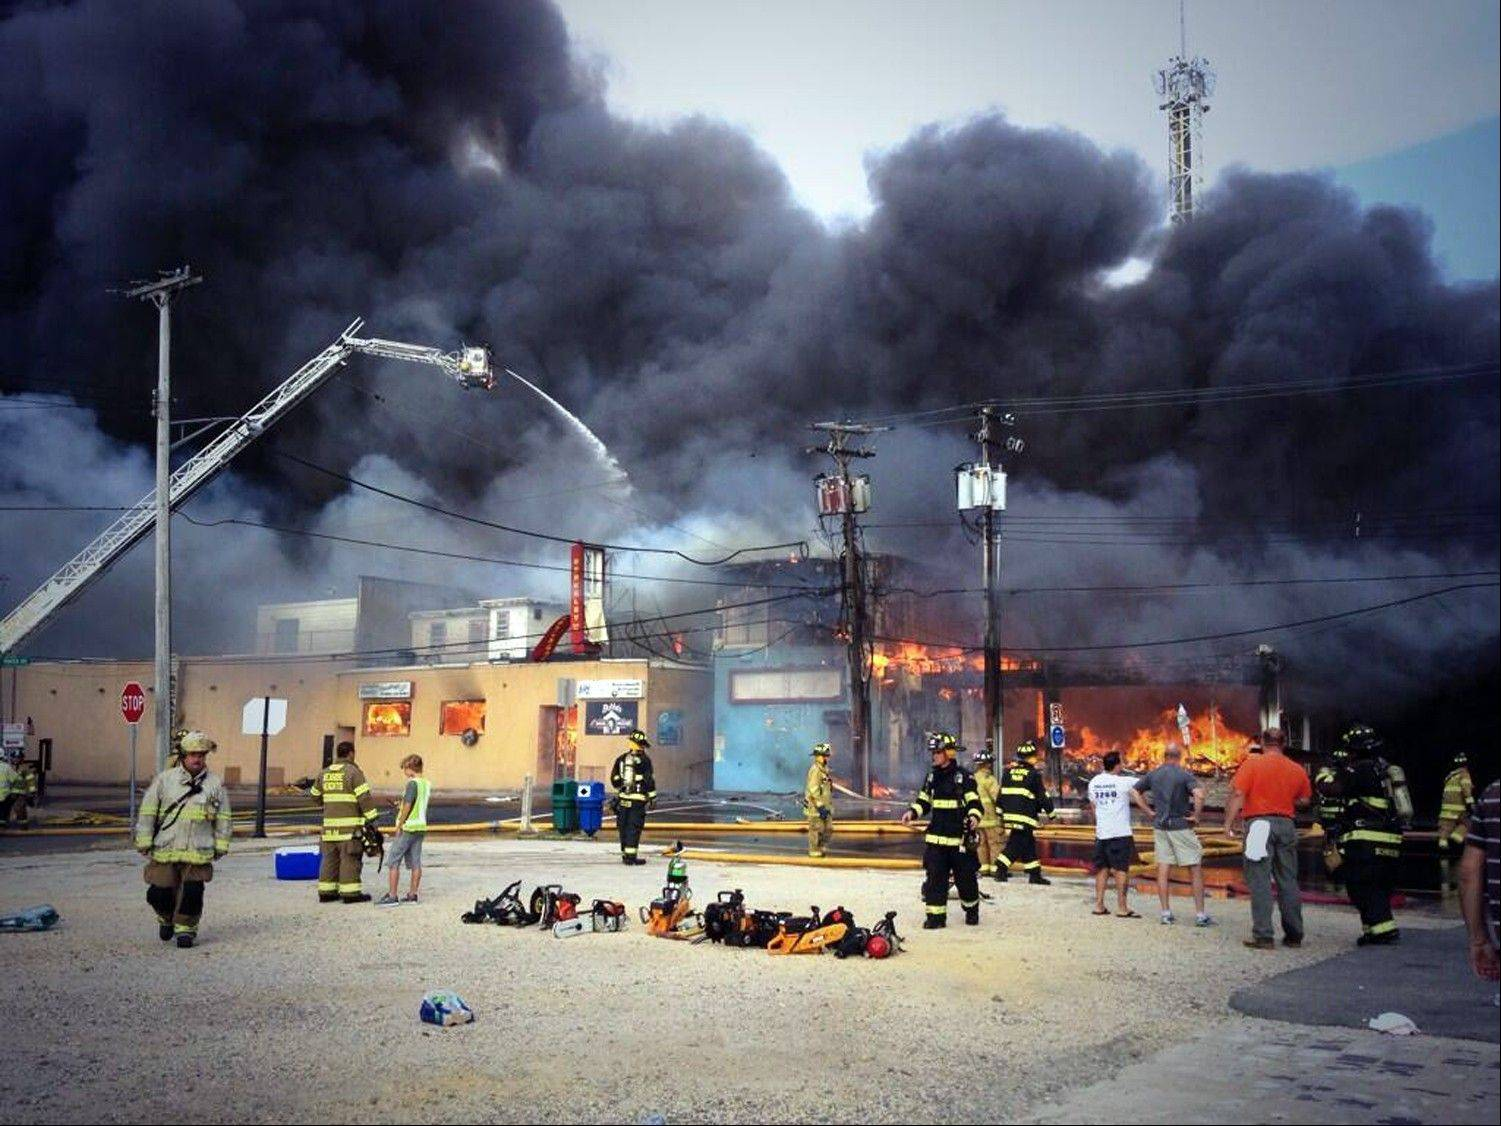 Firefighters battle a raging fire on the boardwalk in Seaside Heights, N.J., that apparently started in an ice cream shop and has spread several blocks down Thursday. The boardwalk was damaged in Superstorm Sandy and was being repaired.